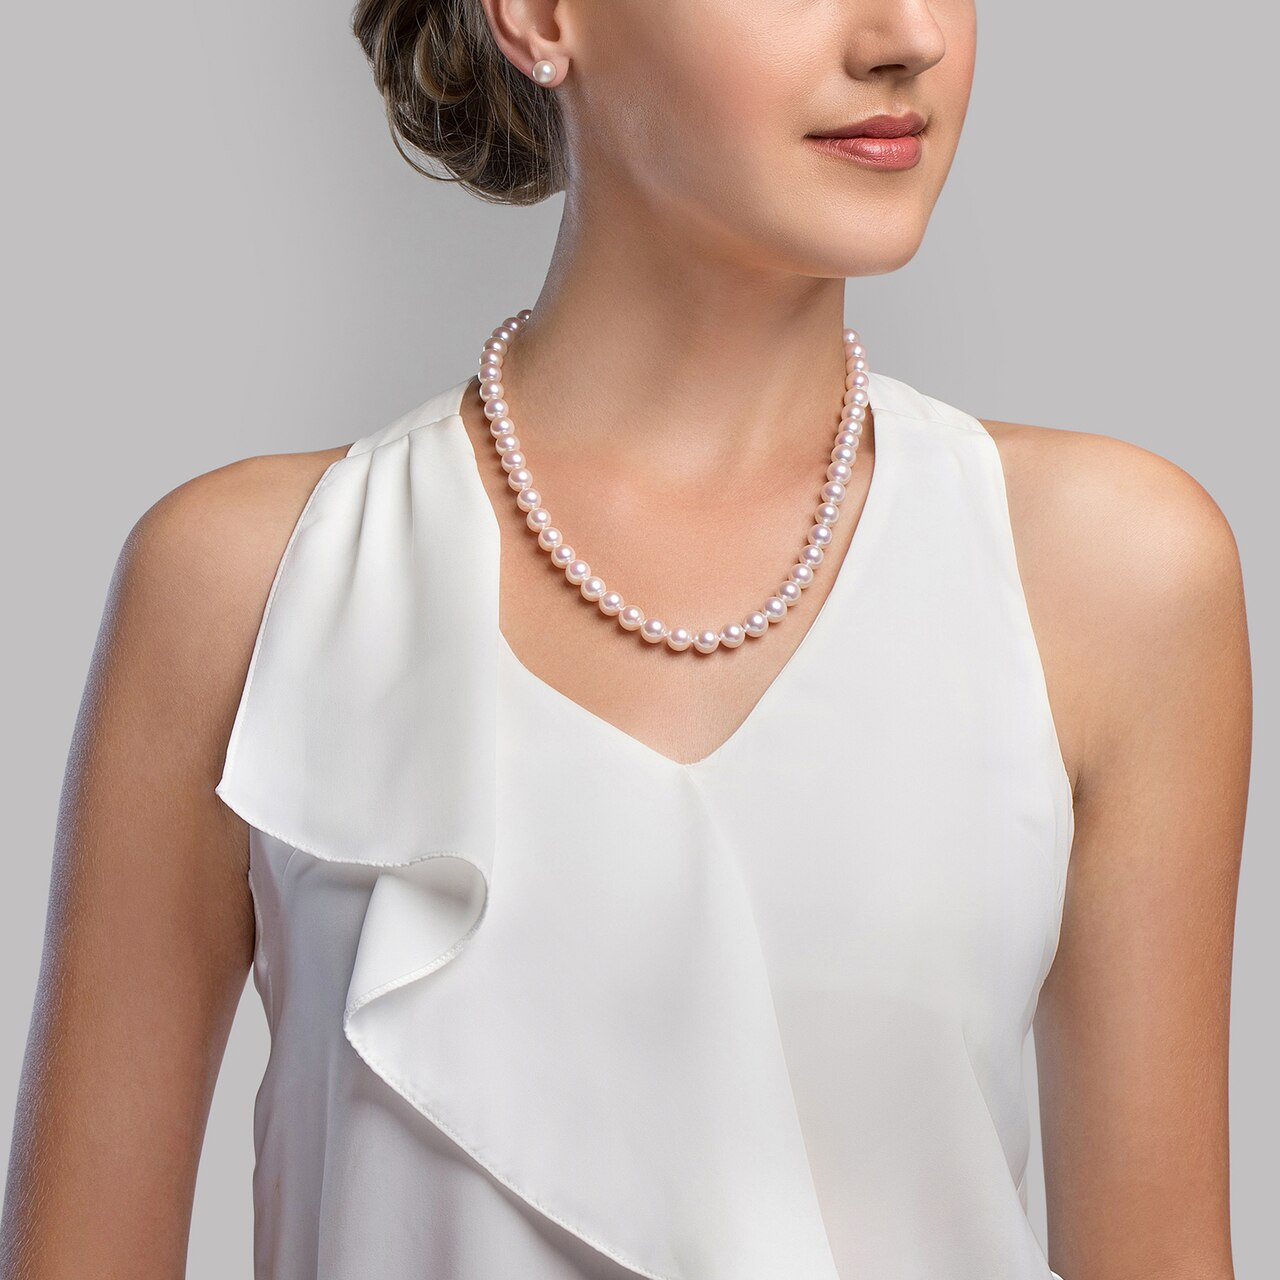 This elegant necklace features 8.0-8.5mm Hanadama Akoya pearls, handpicked for their luminous luster